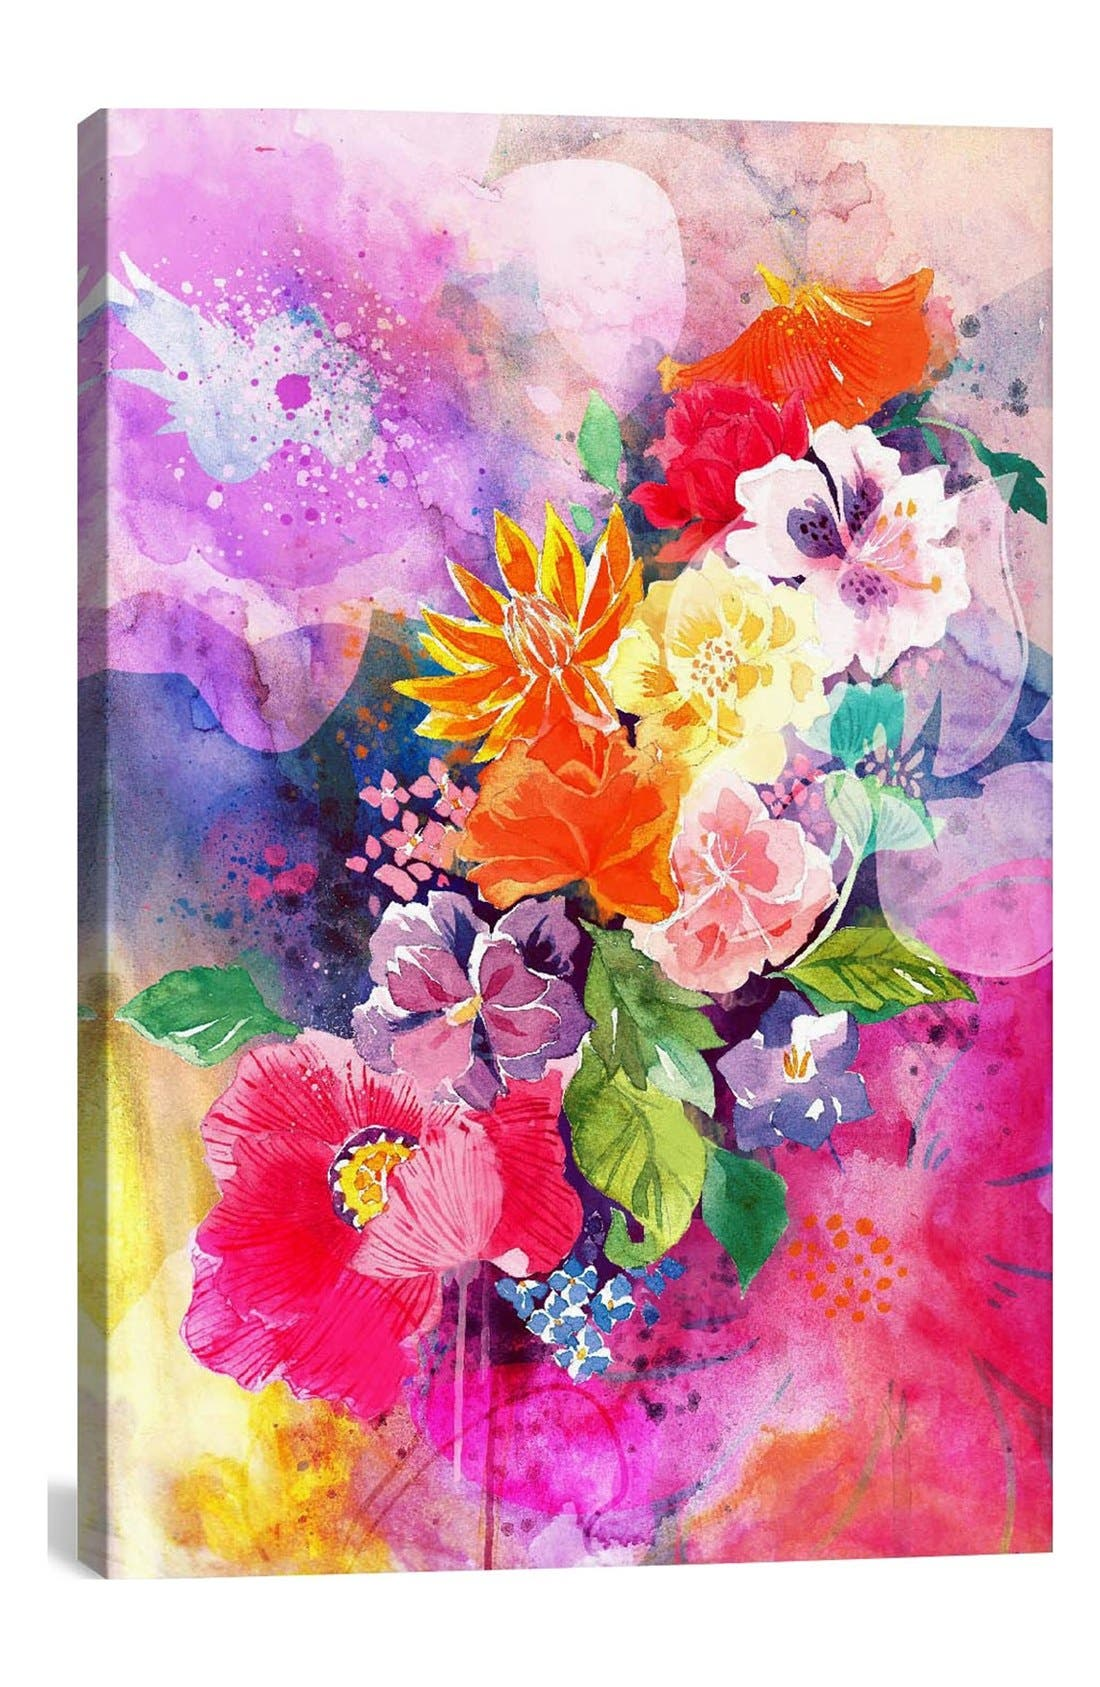 Alternate Image 1 Selected - iCanvas 'Spring Flowers - DarkLord' Giclée Print Canvas Art